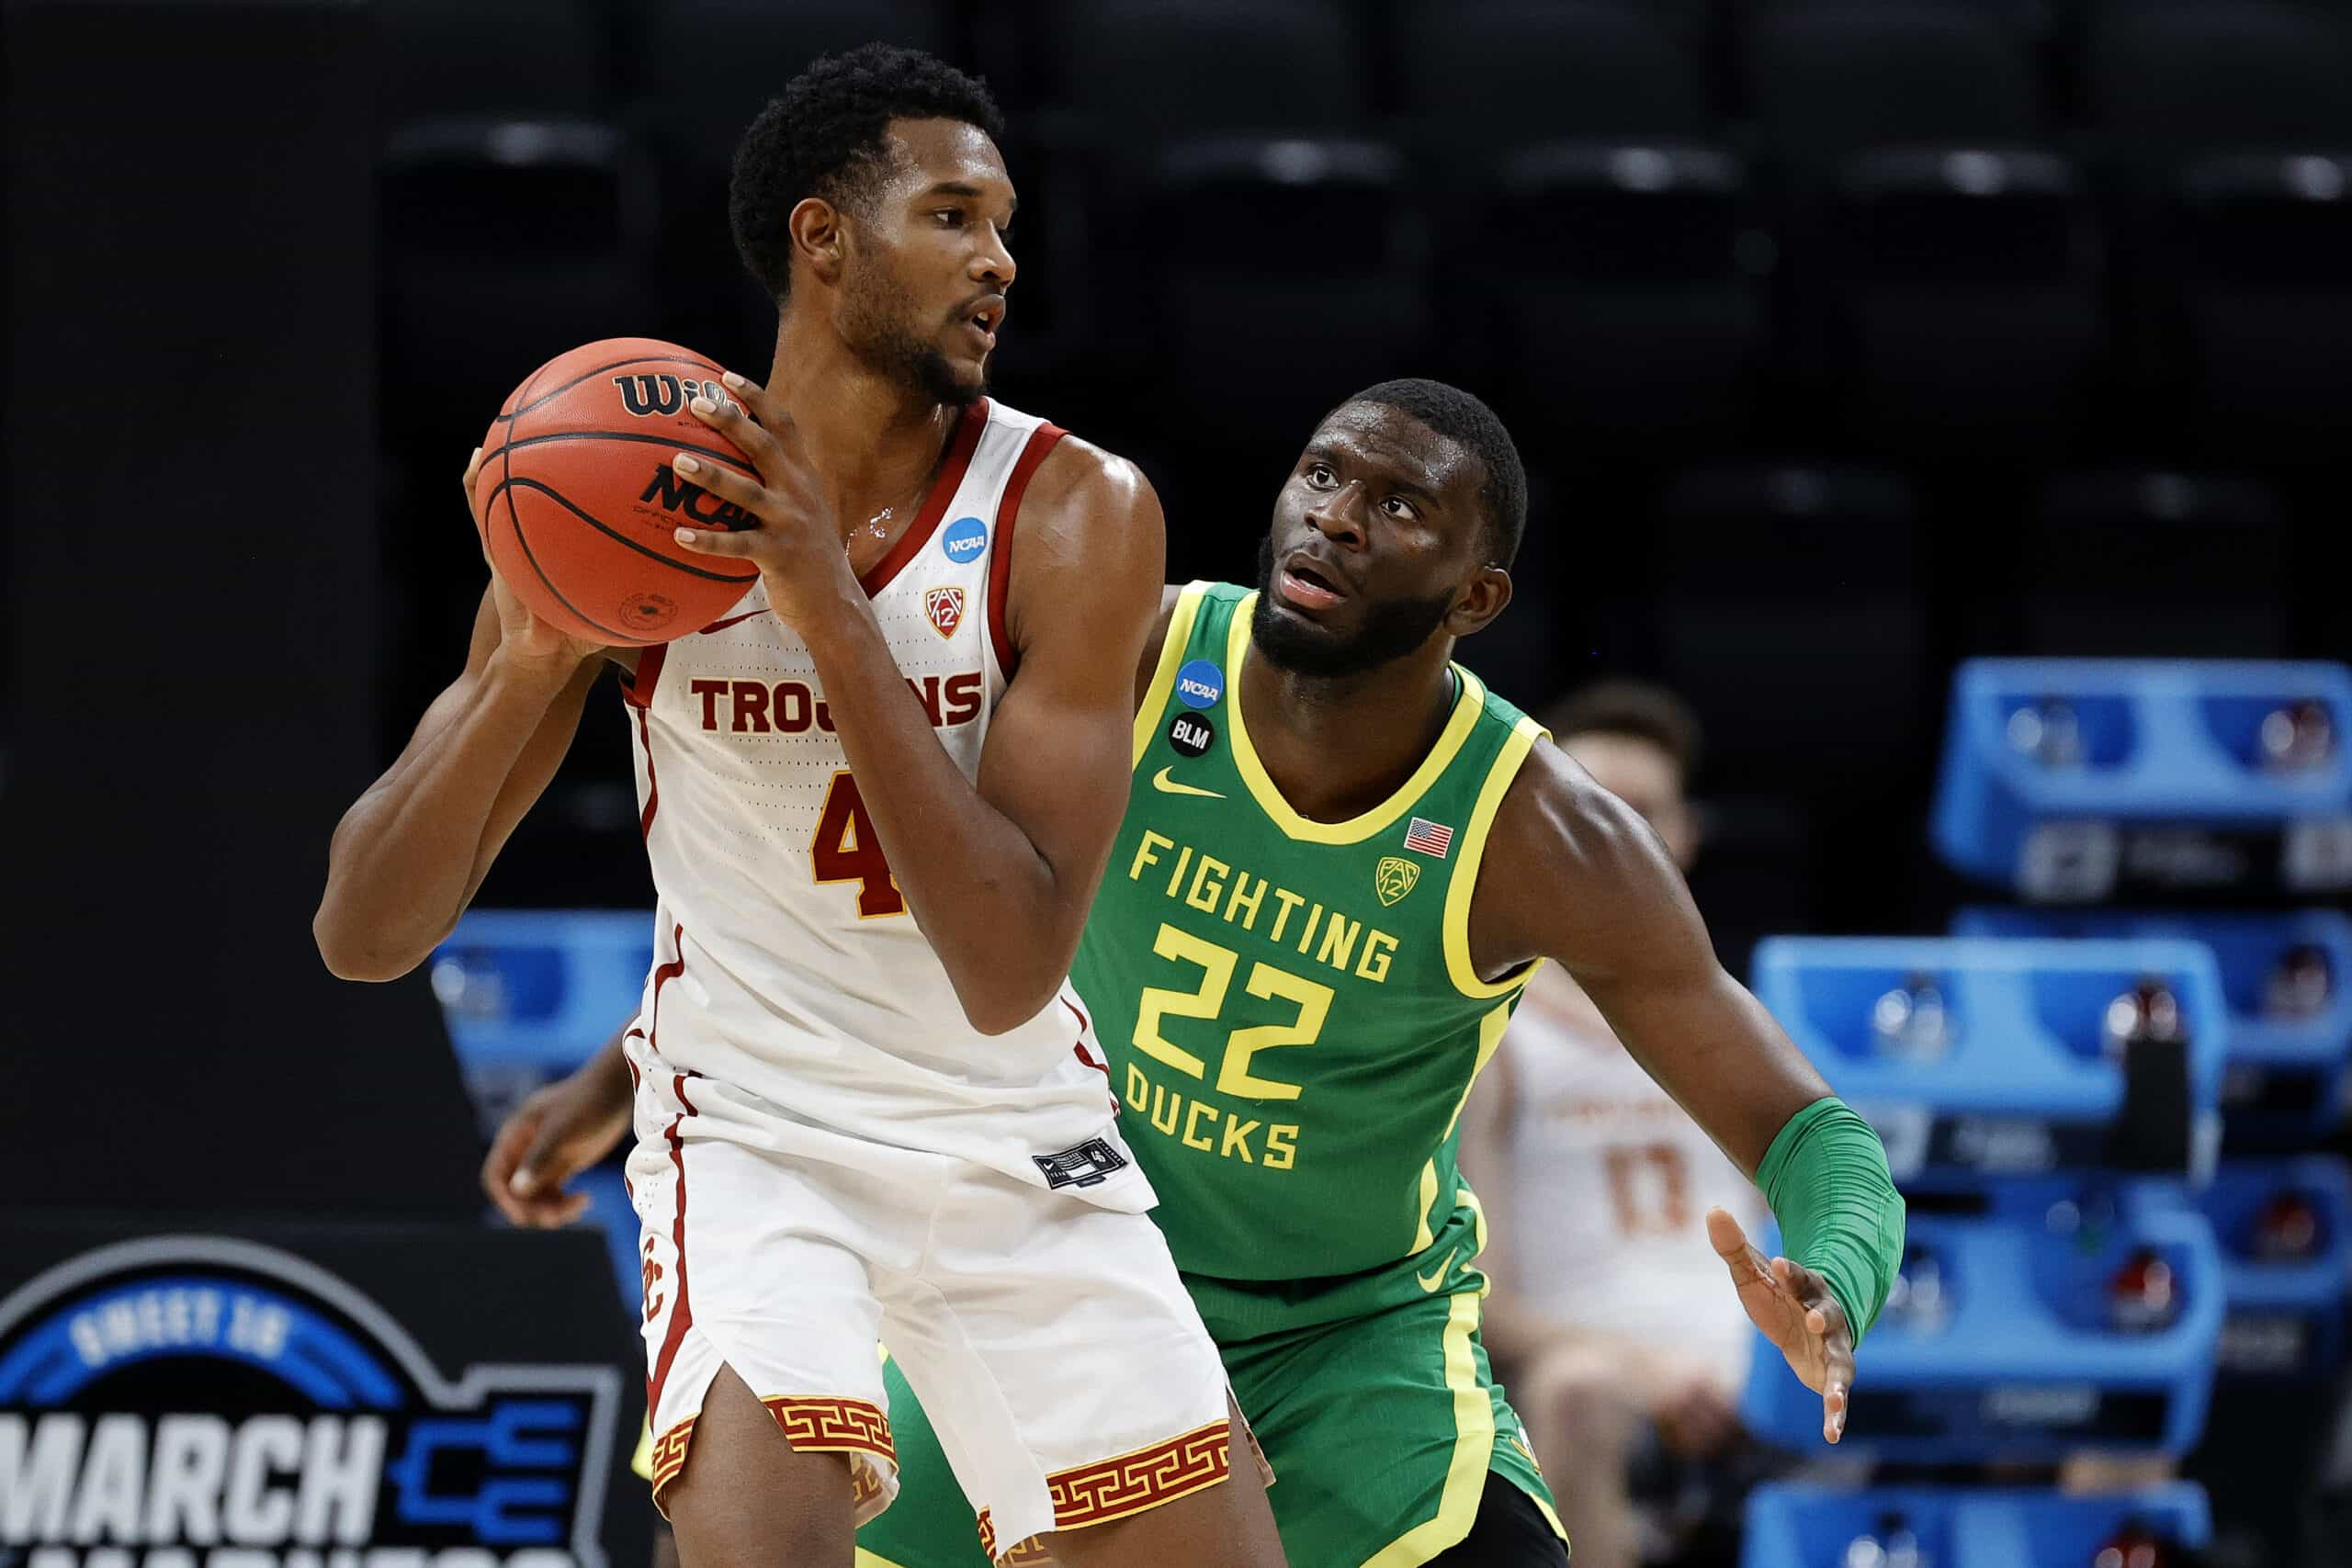 Cavaliers draft target Evan Mobley #4 of the USC Trojans looks to pass against Franck Kepnang #22 of the Oregon Ducks in the second half of their Sweet Sixteen round game of the 2021 NCAA Men's Basketball Tournament at Bankers Life Fieldhouse on March 28, 2021 in Indianapolis, Indiana.